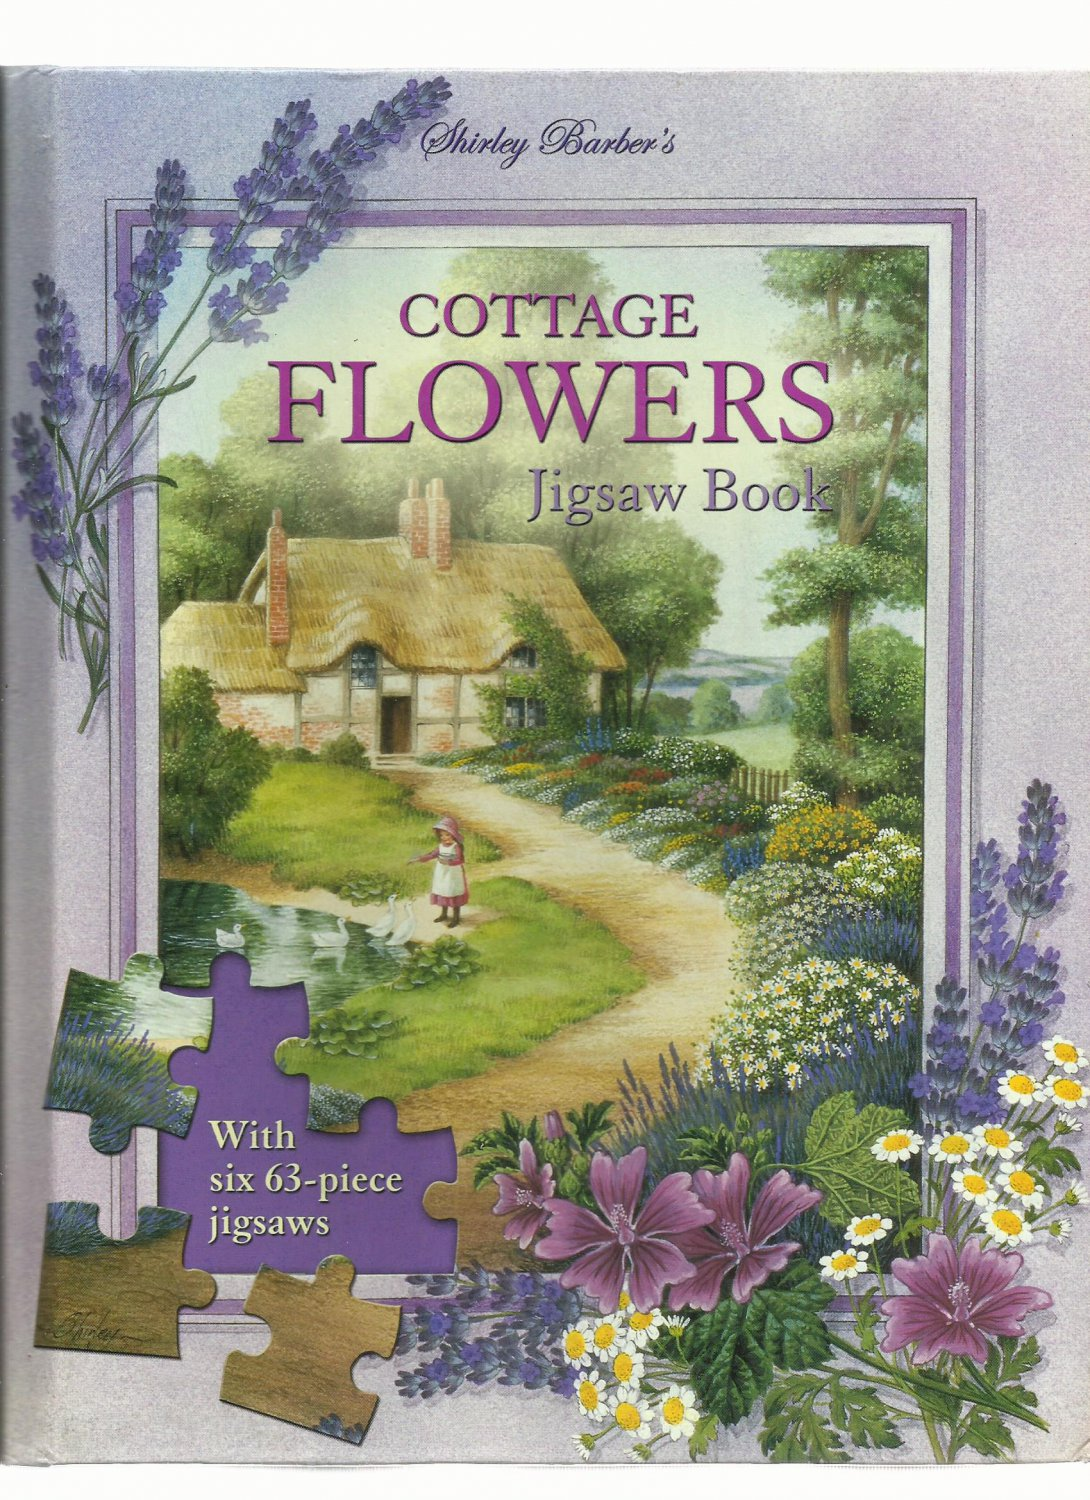 Jigsaw Puzzle Book - COTTAGE FLOWERS JIGSAW BOOK 2003 Unused